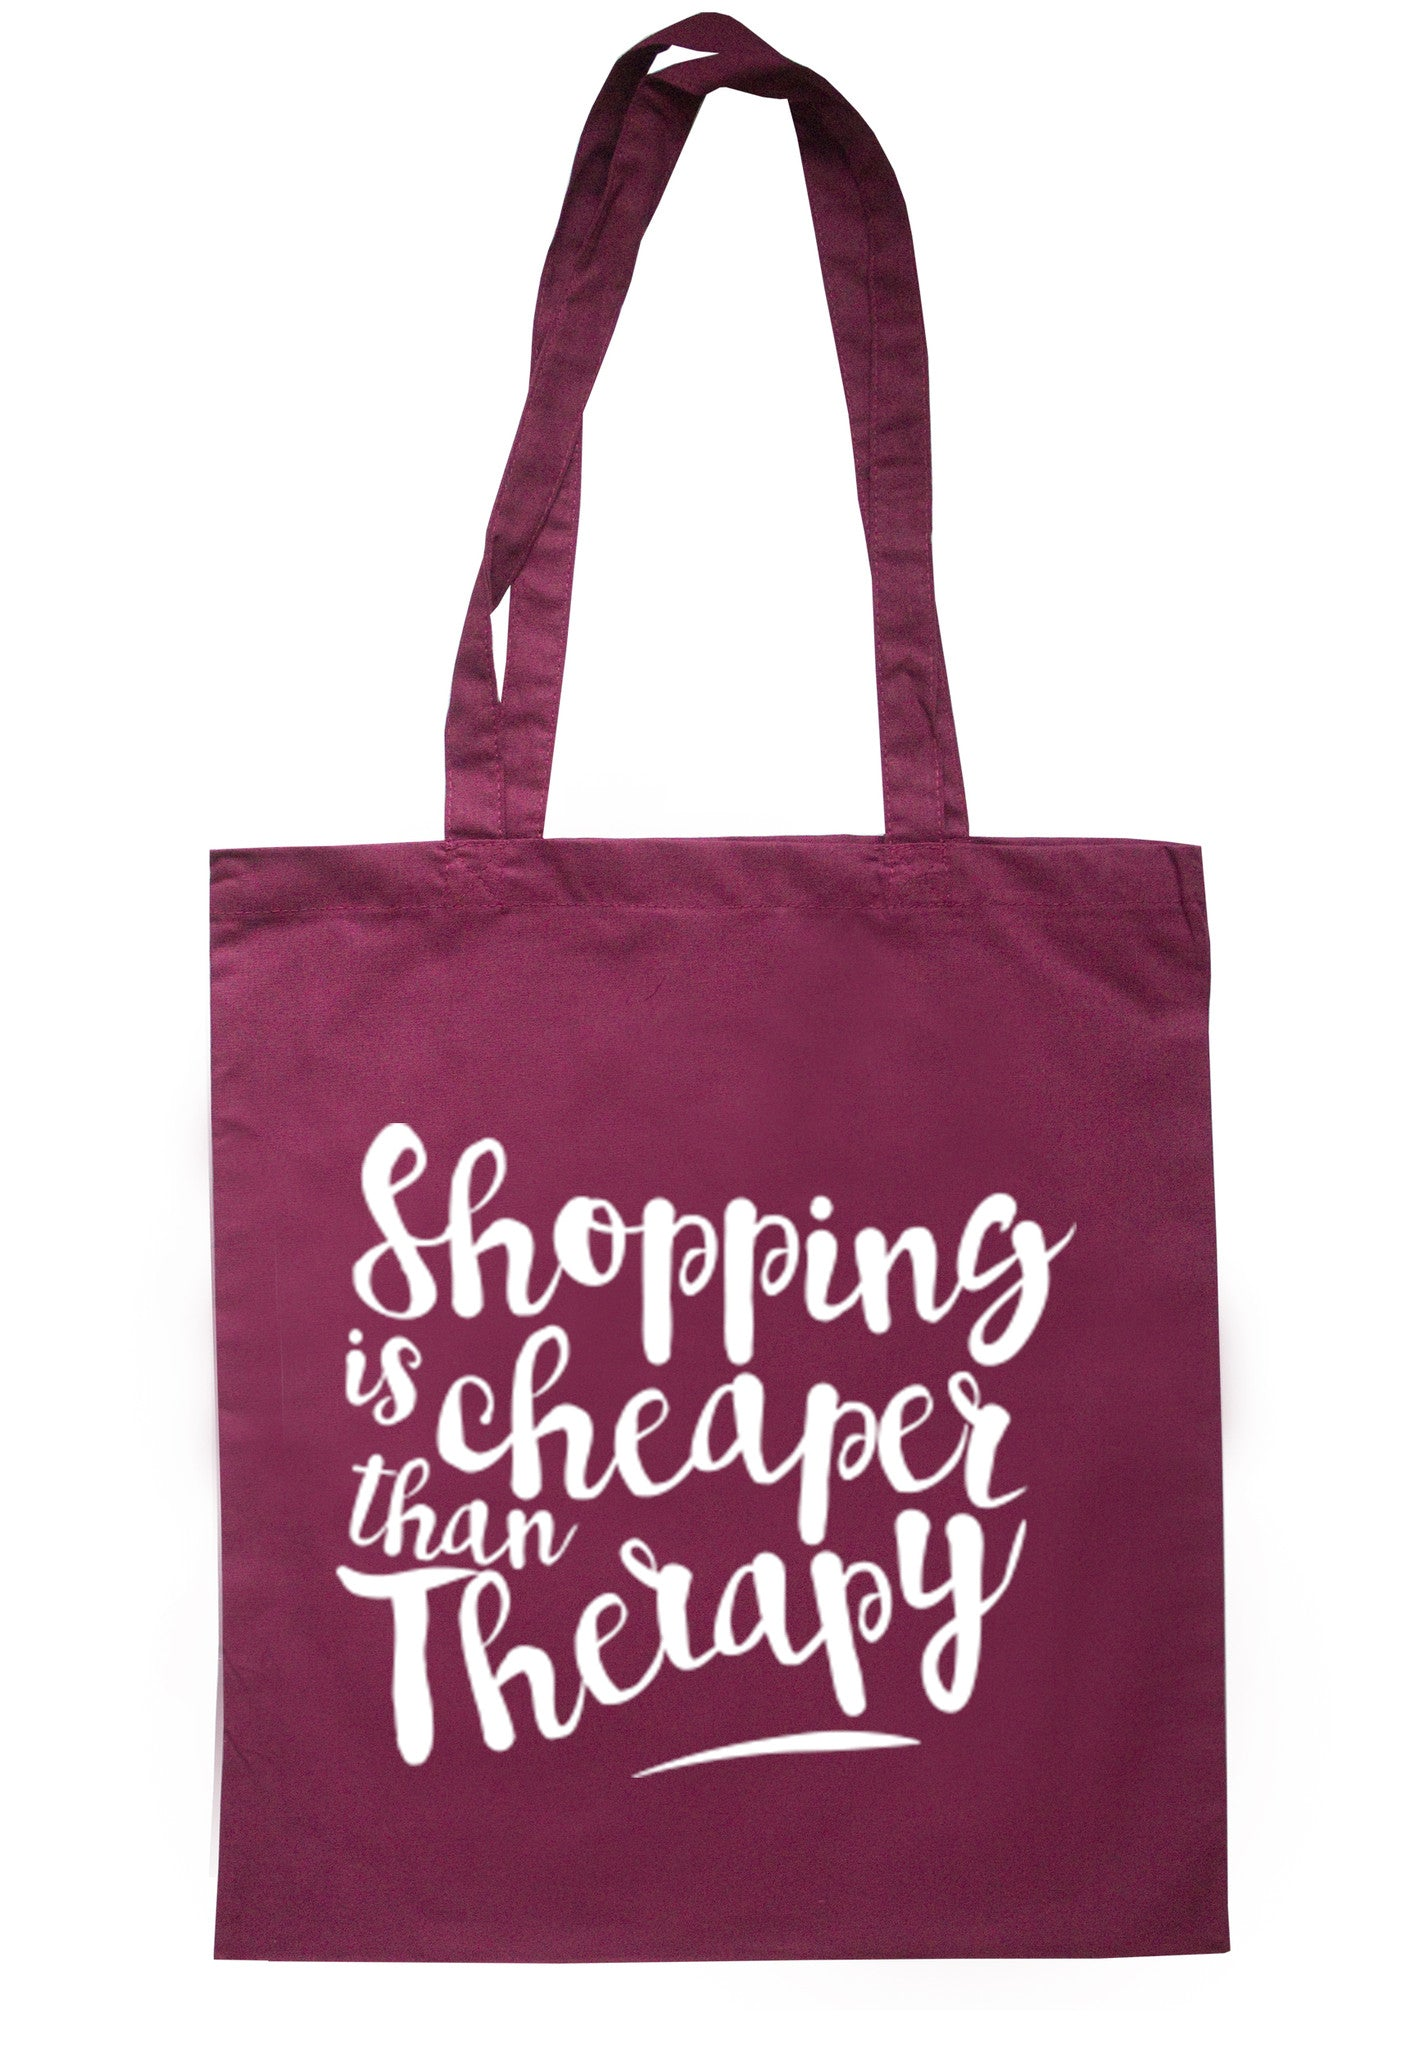 Shopping Is Cheaper Than Therapy Tote Bag TB0001 - Illustrated Identity Ltd.